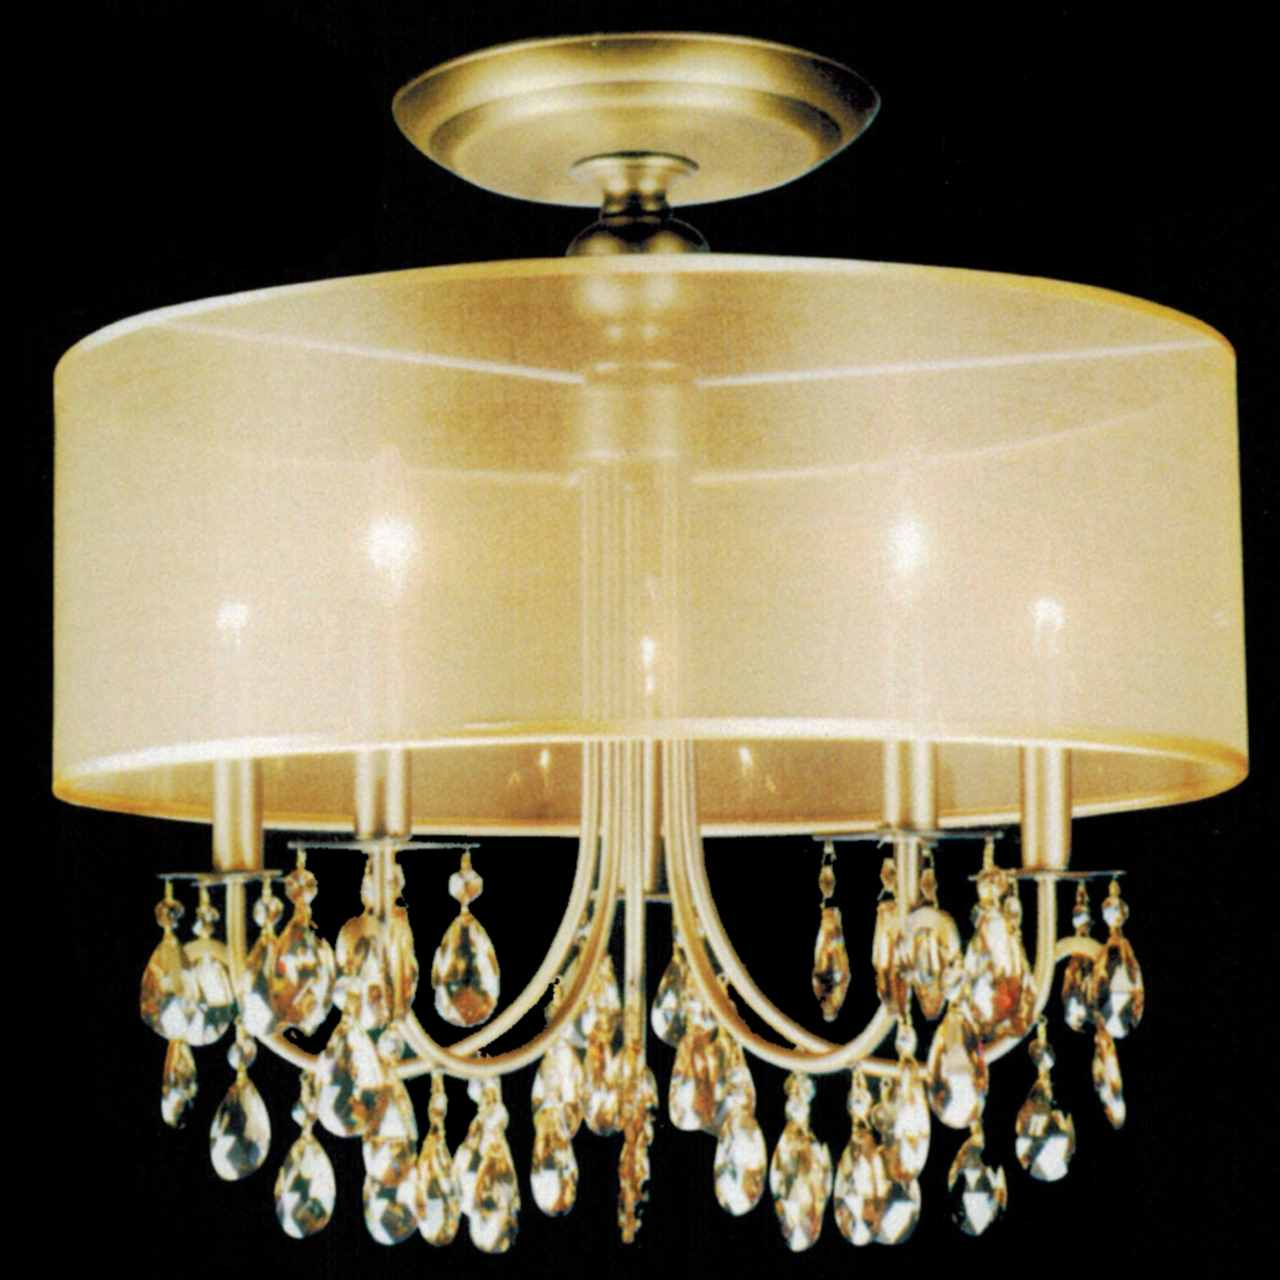 Brizzo lighting stores 22 organza contemporary round crystal flush picture of 22 organza contemporary round crystal flush mount ceiling lamp antique brass finish champagne aloadofball Choice Image